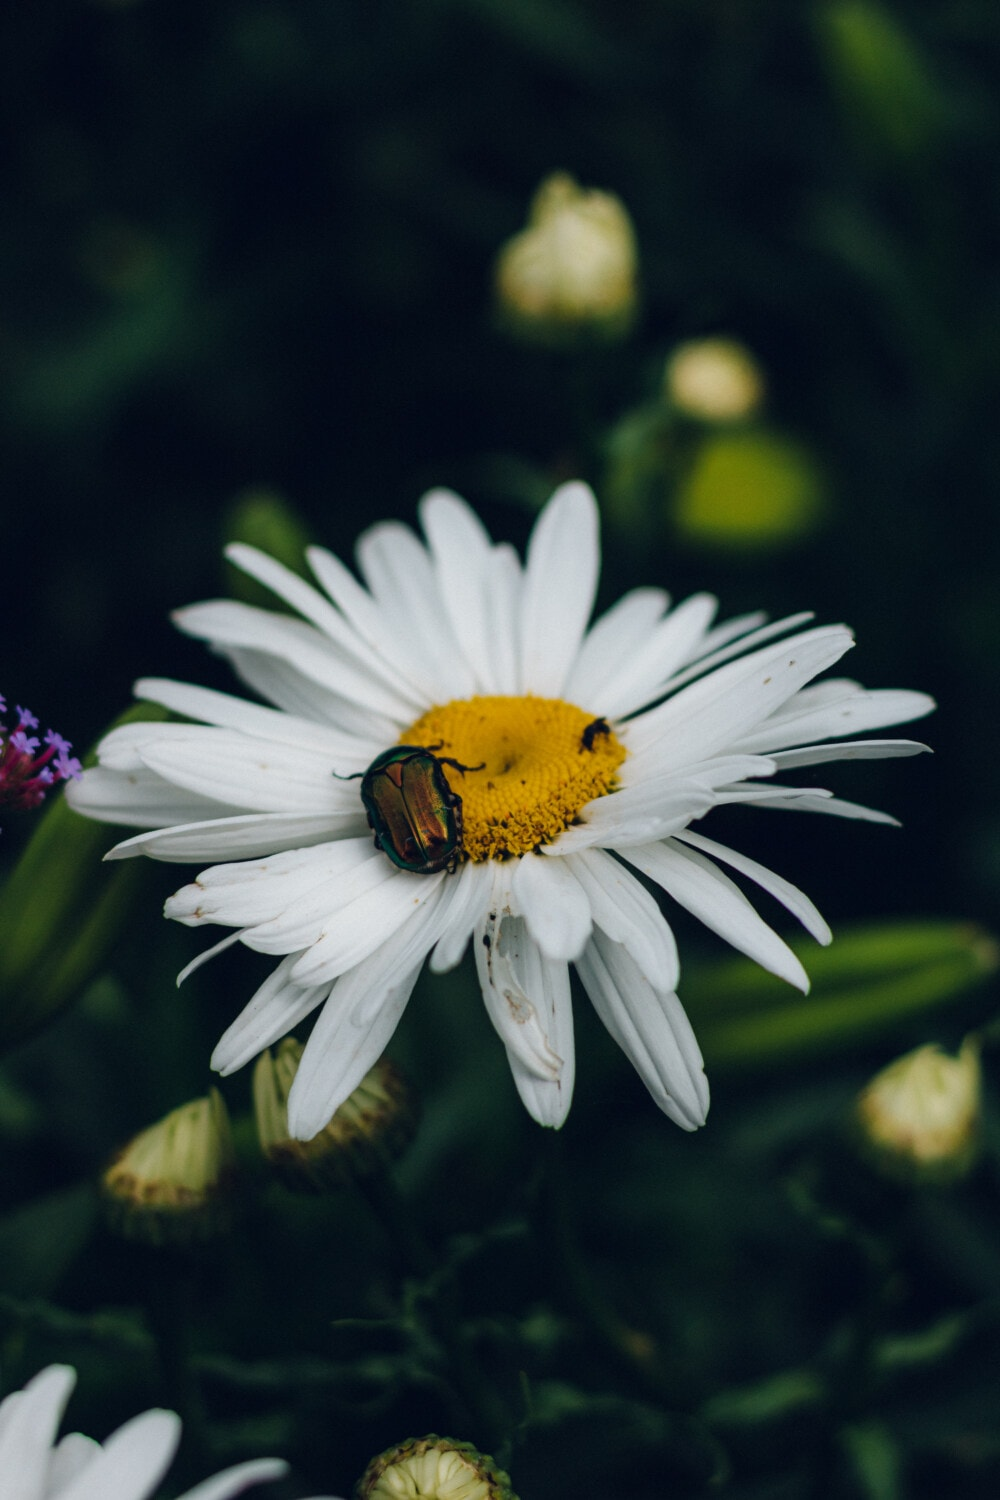 beetle, insect, green, white flower, daisy, close-up, blossom, flower, spring, plant